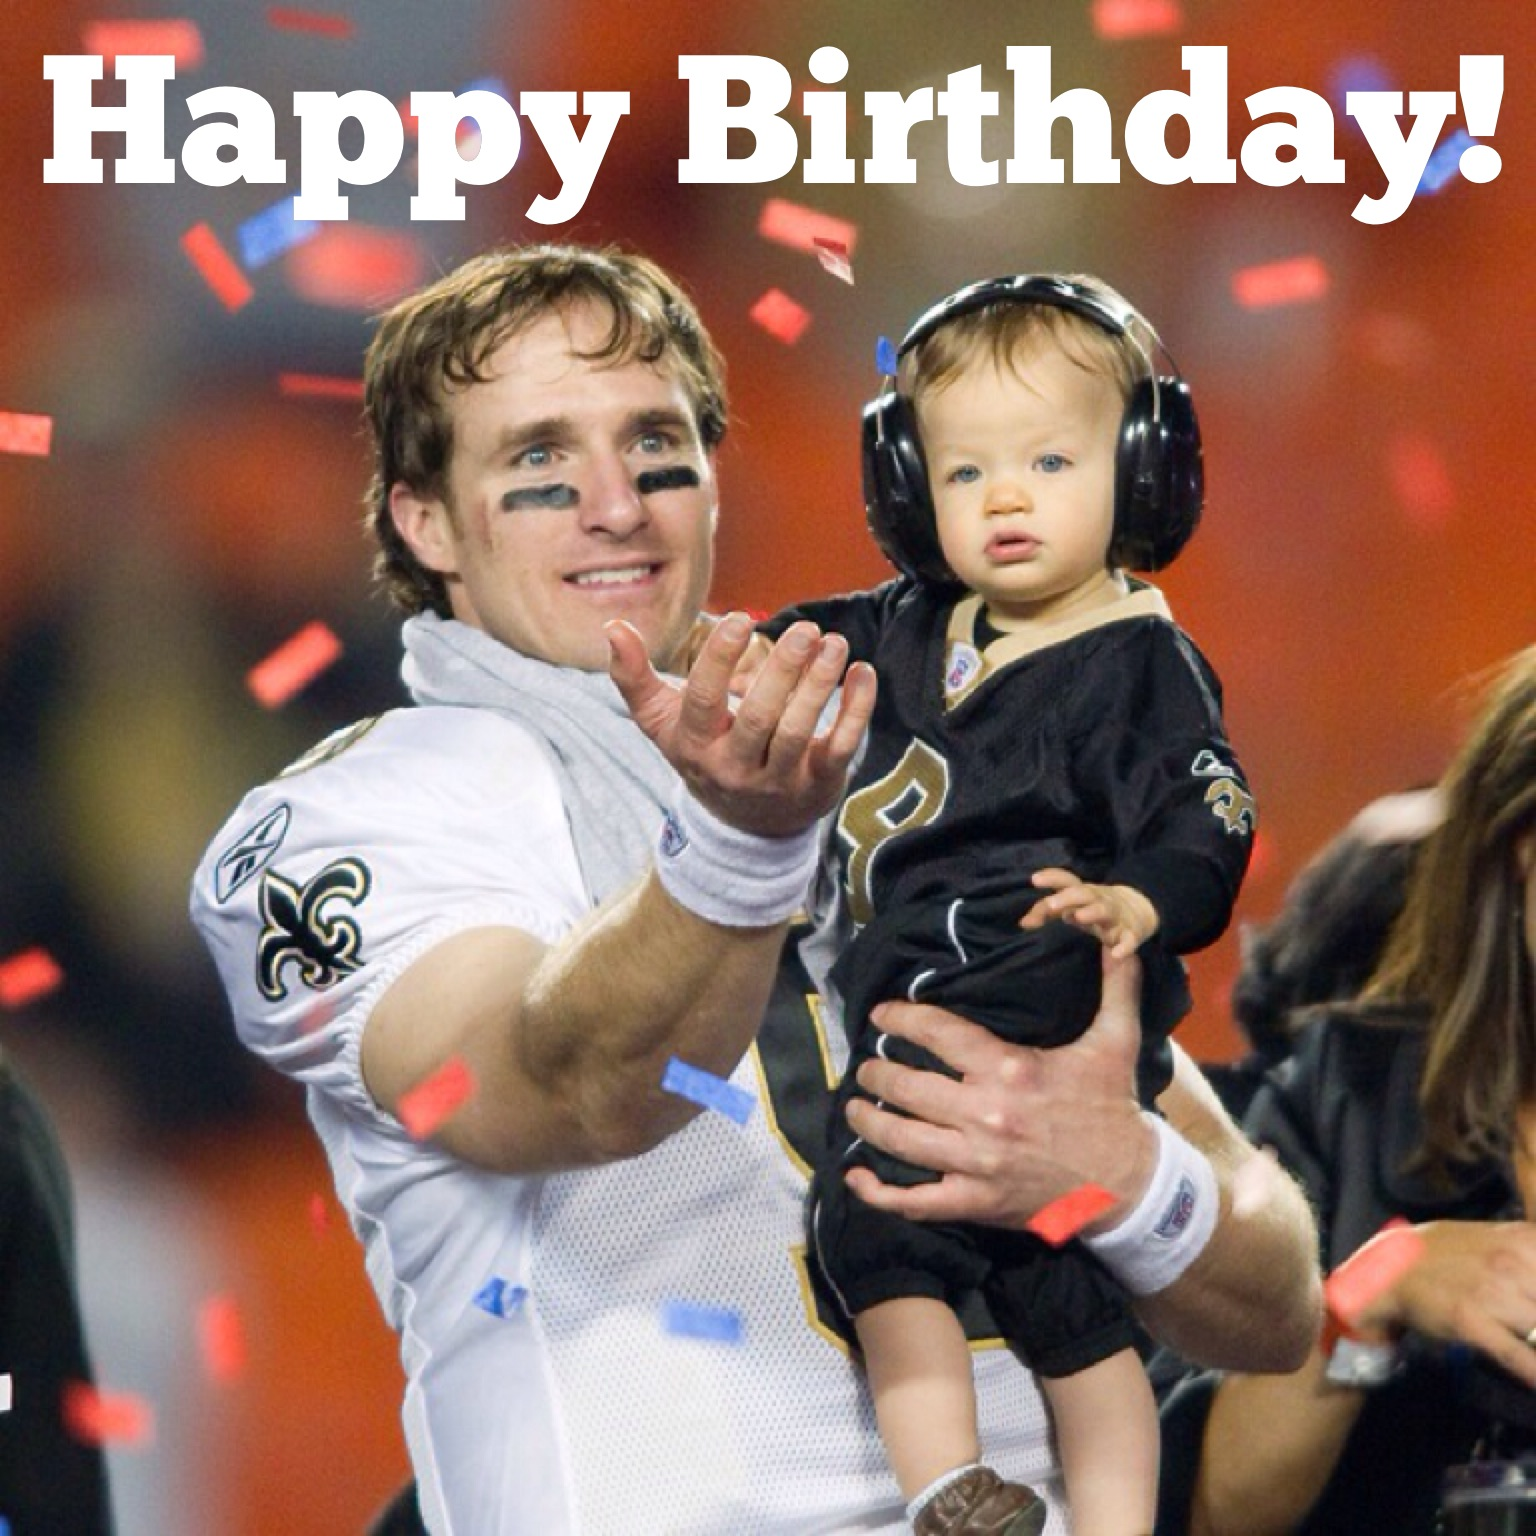 Happy-Birthday-to-Drew-Brees-and-his-son-Baylen-Saints-NOLA-wallpaper-wpc5805667